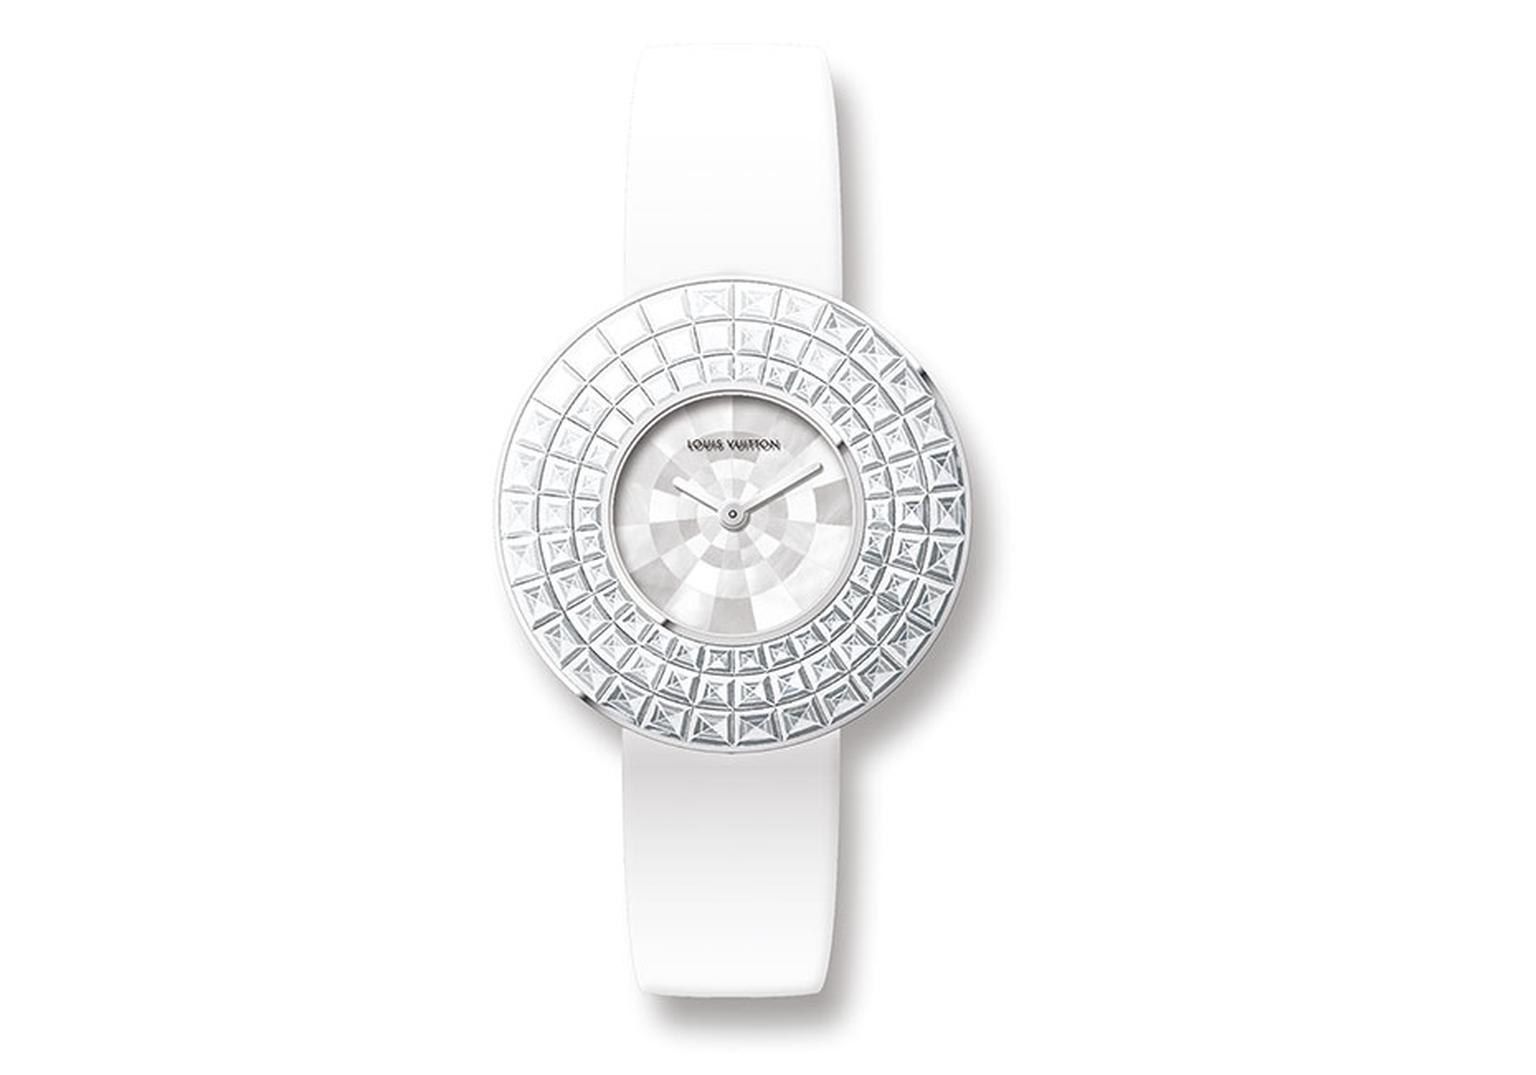 Louis Vuitton Damier Absolu watch in white gold featuring a mother-of-pearl dial encircled by a bezel invisible set with three rows of baguette-cut diamonds